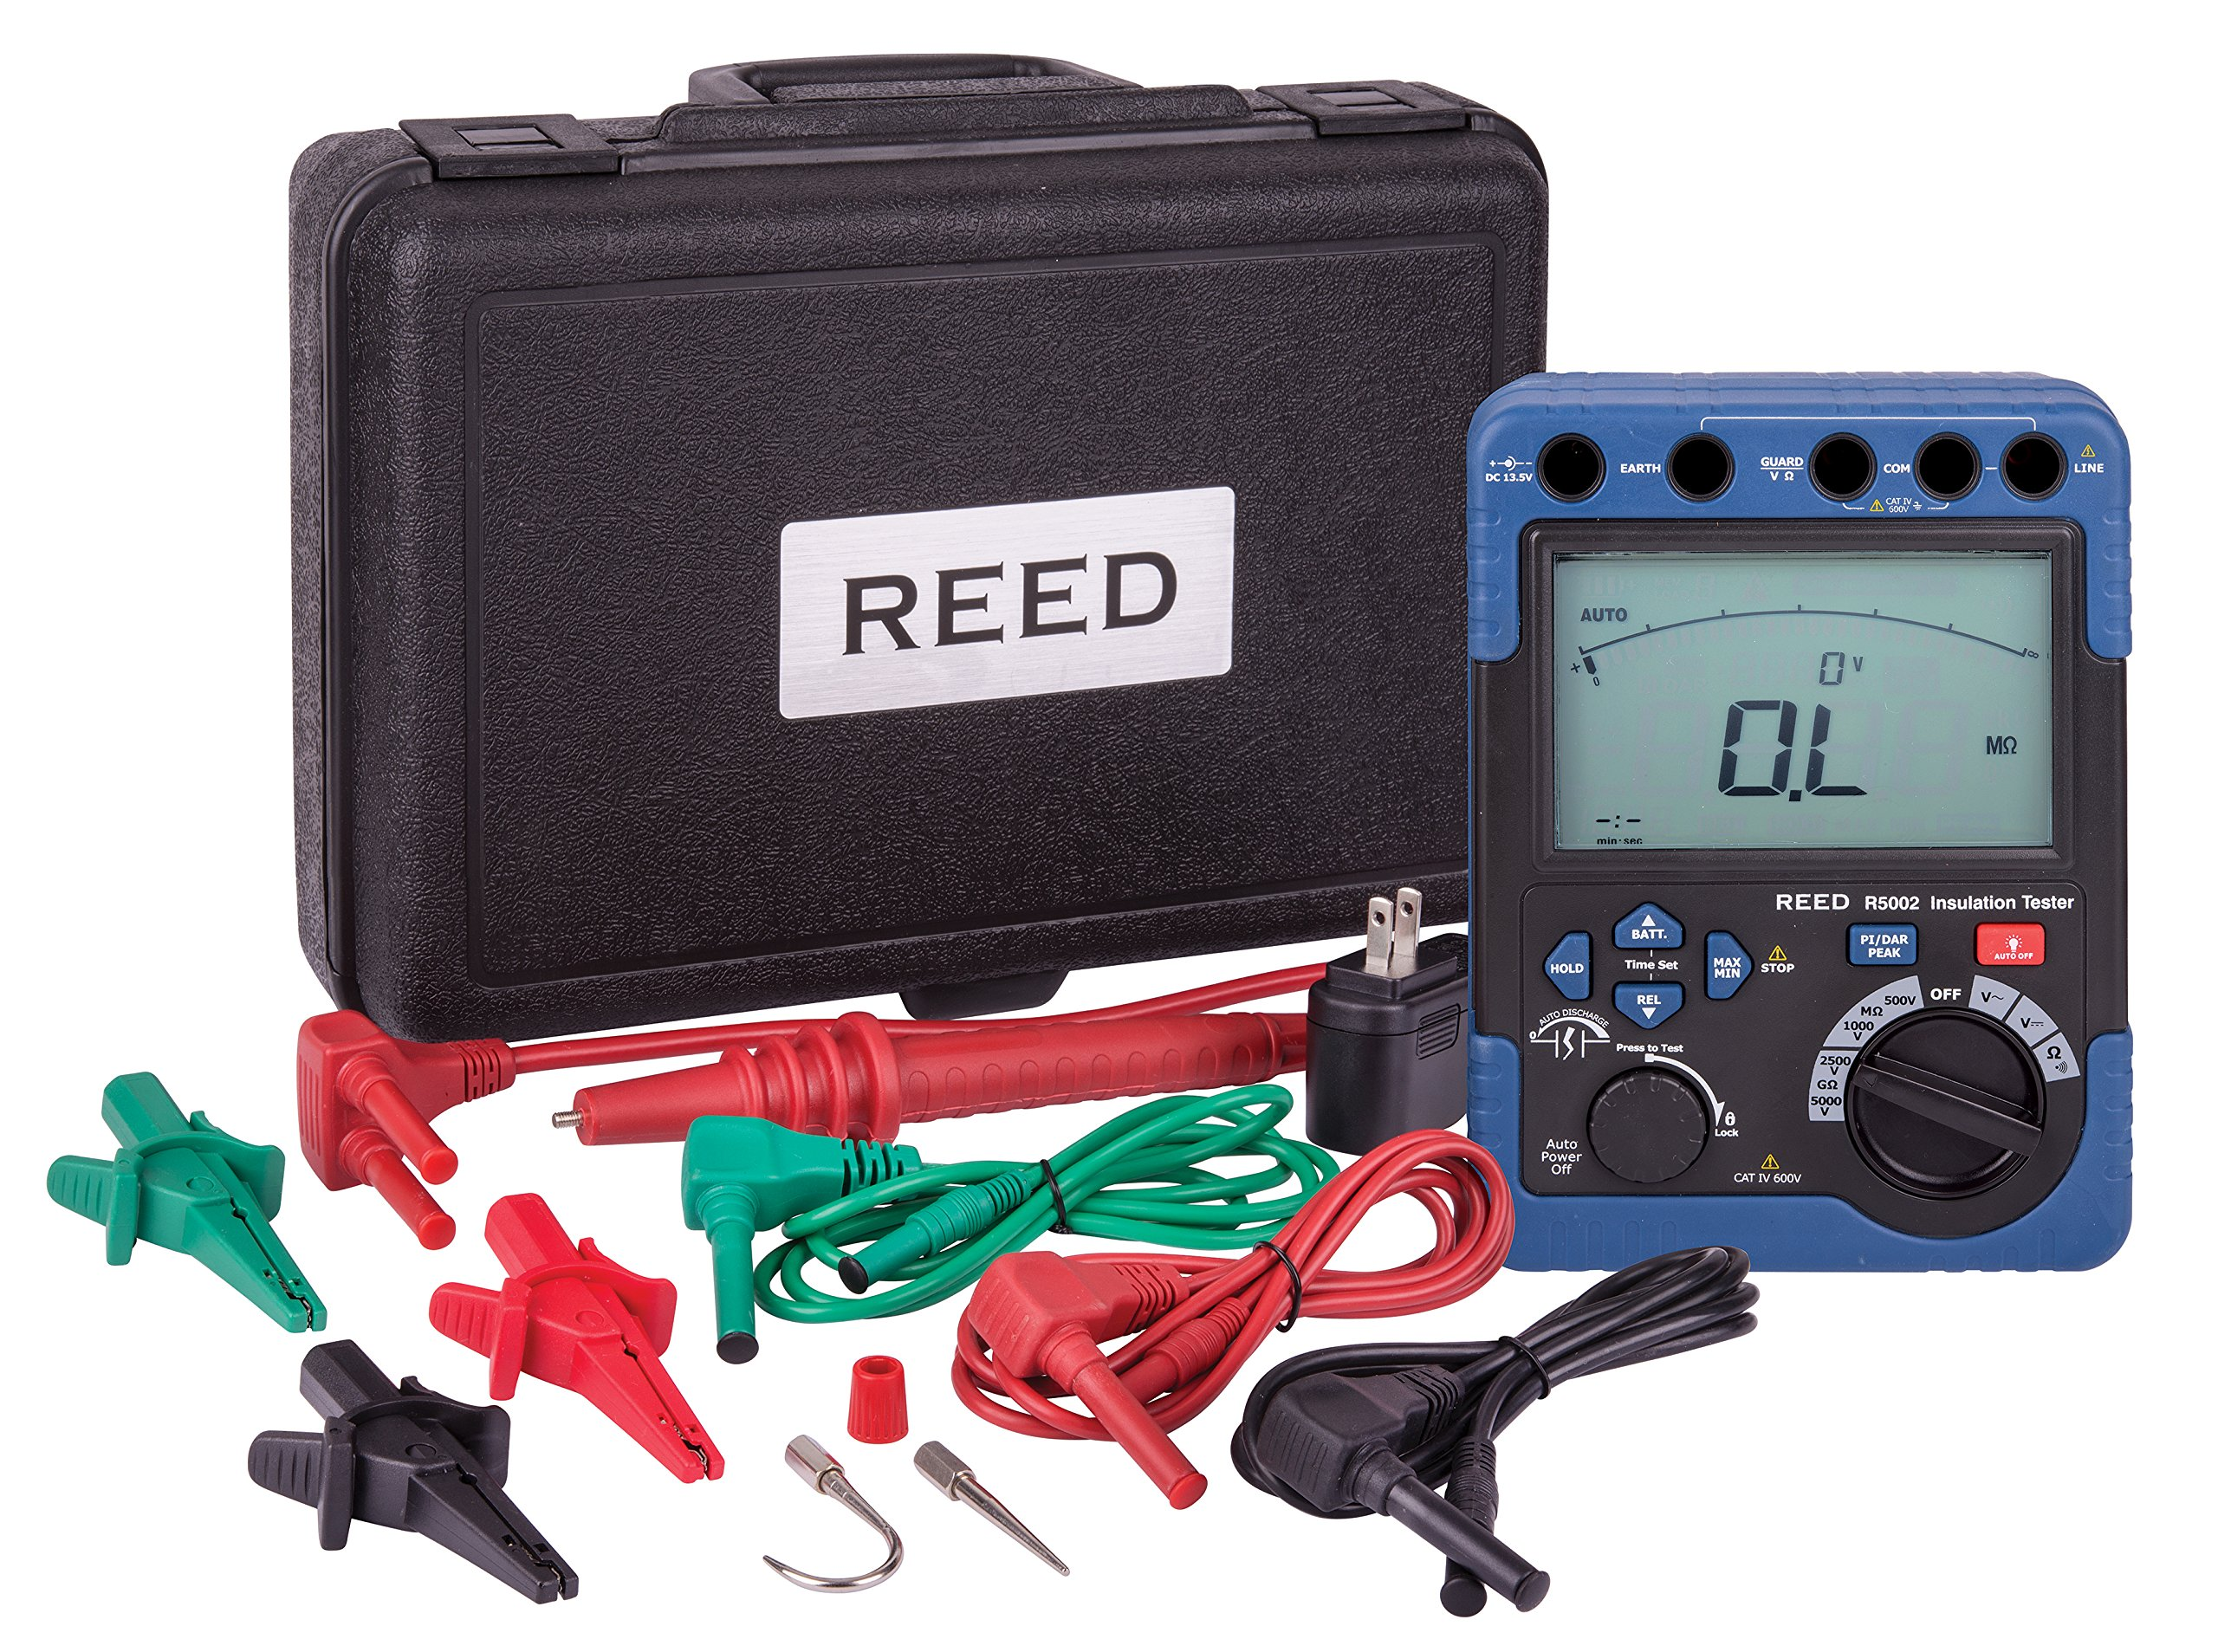 REED Instruments R5002 Digital High Voltage Insulation Tester by REED Instruments